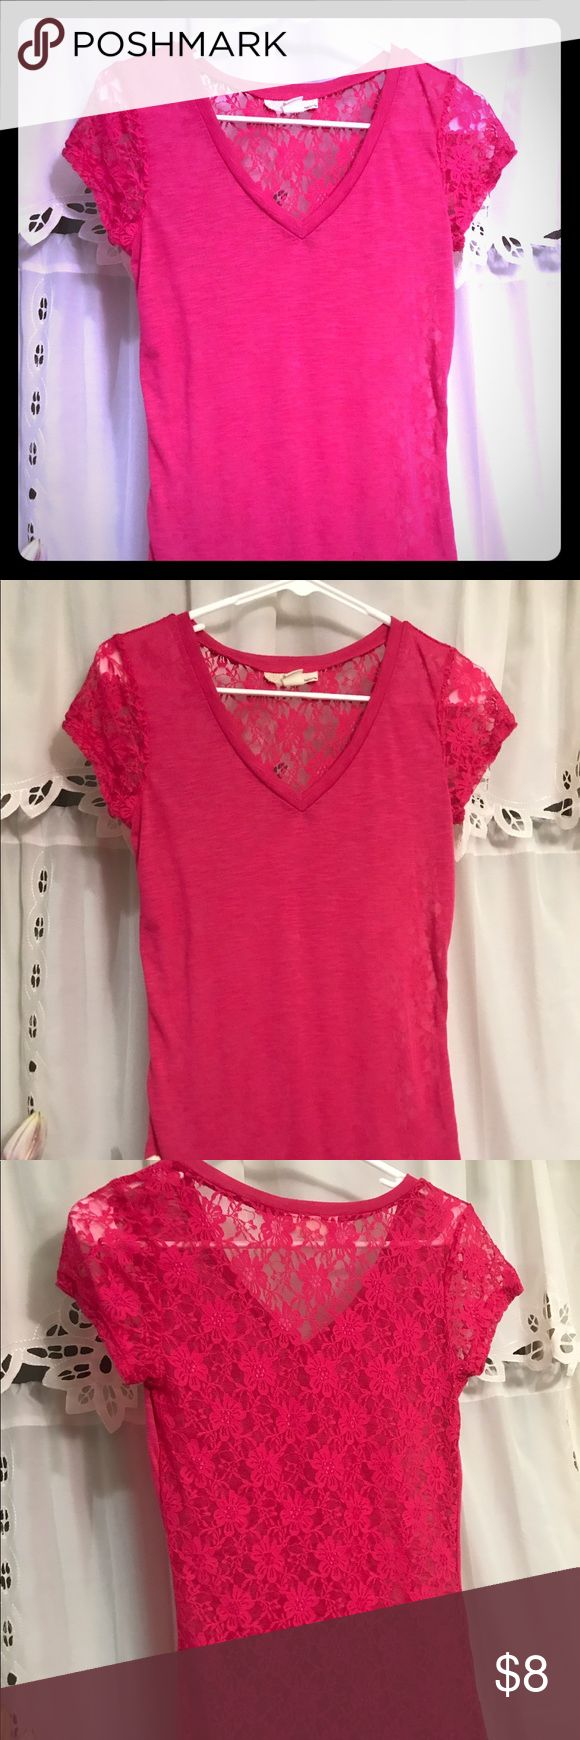 Fuschia v neck lace back tee- charity sale! Derek heart fuschia long v neck tee with sheer / see through lace back. Size juniors medium, sadly way too small for me! Proceeds from this sale will benefit Sisters Strong, a breast cancer support group of the Twin Cities, that I am so thankful for their support for my mother during her battle when I was thousands of miles away. She is now 4 years cancer free! It's never too soon to get checked! Save the ta tas! Derek Heart Tops Tees - Short…